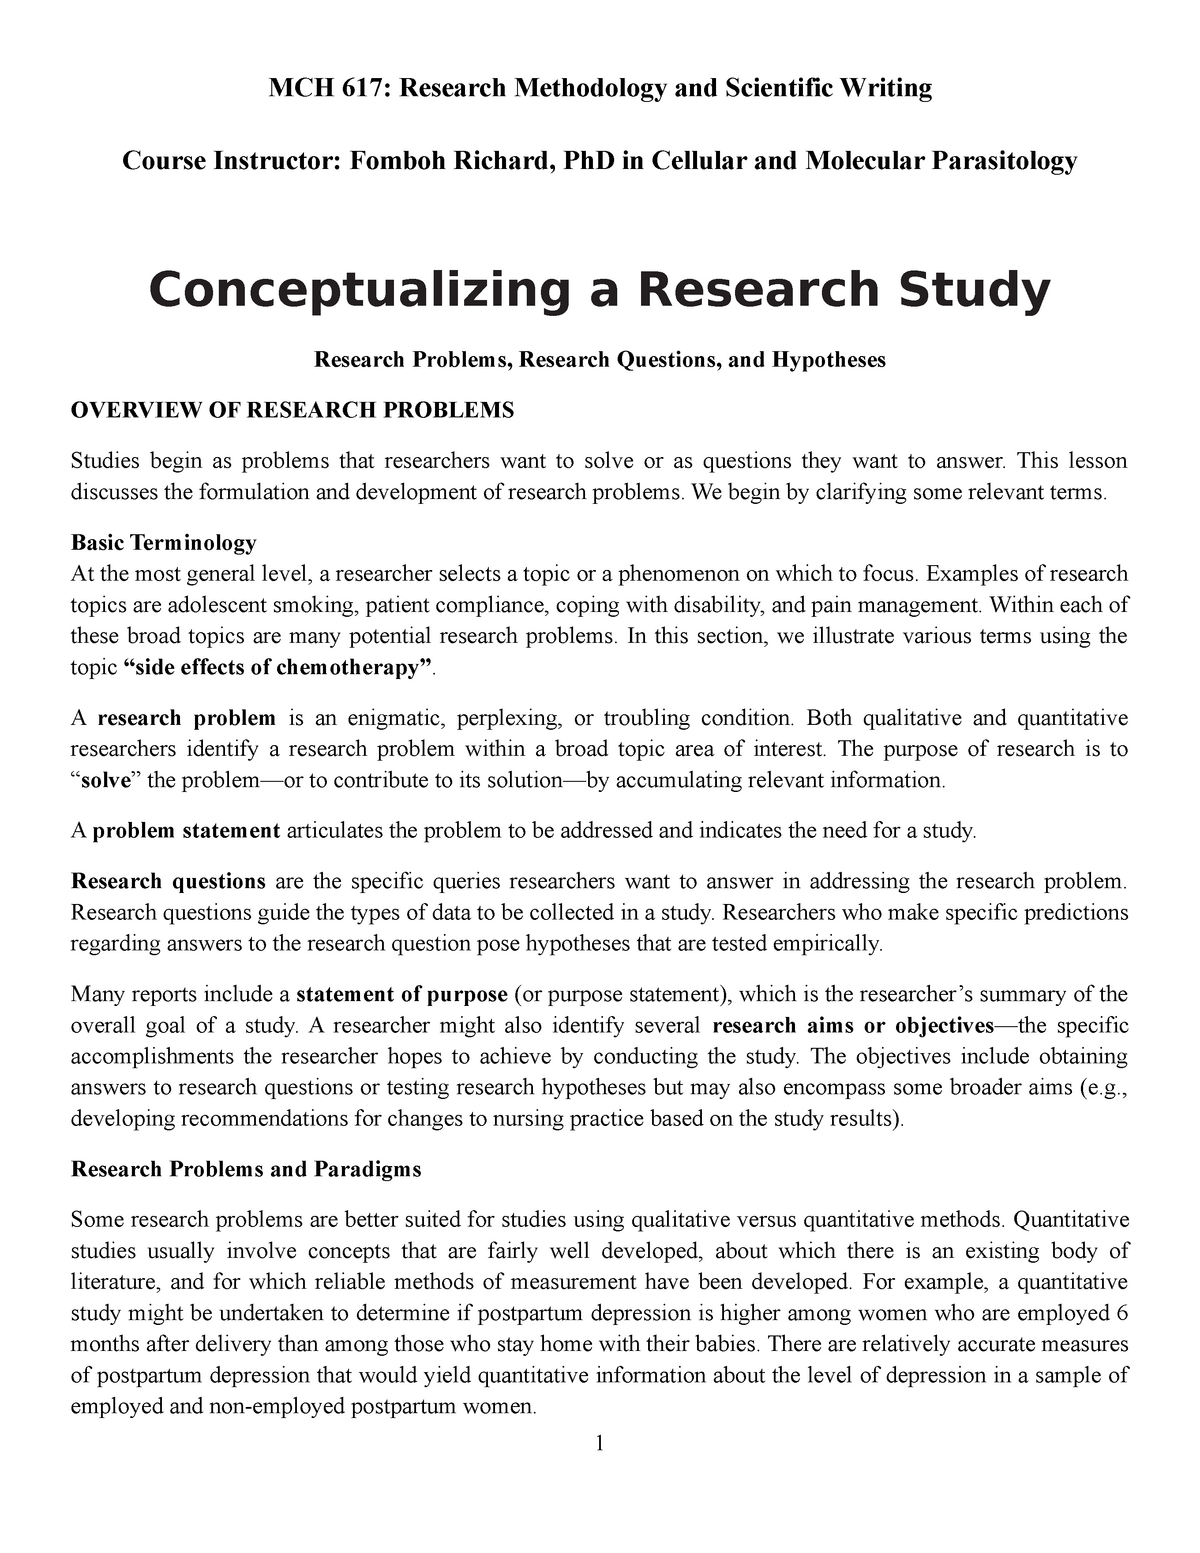 3 Conceptualizing a Research Study - MCH 617: Research